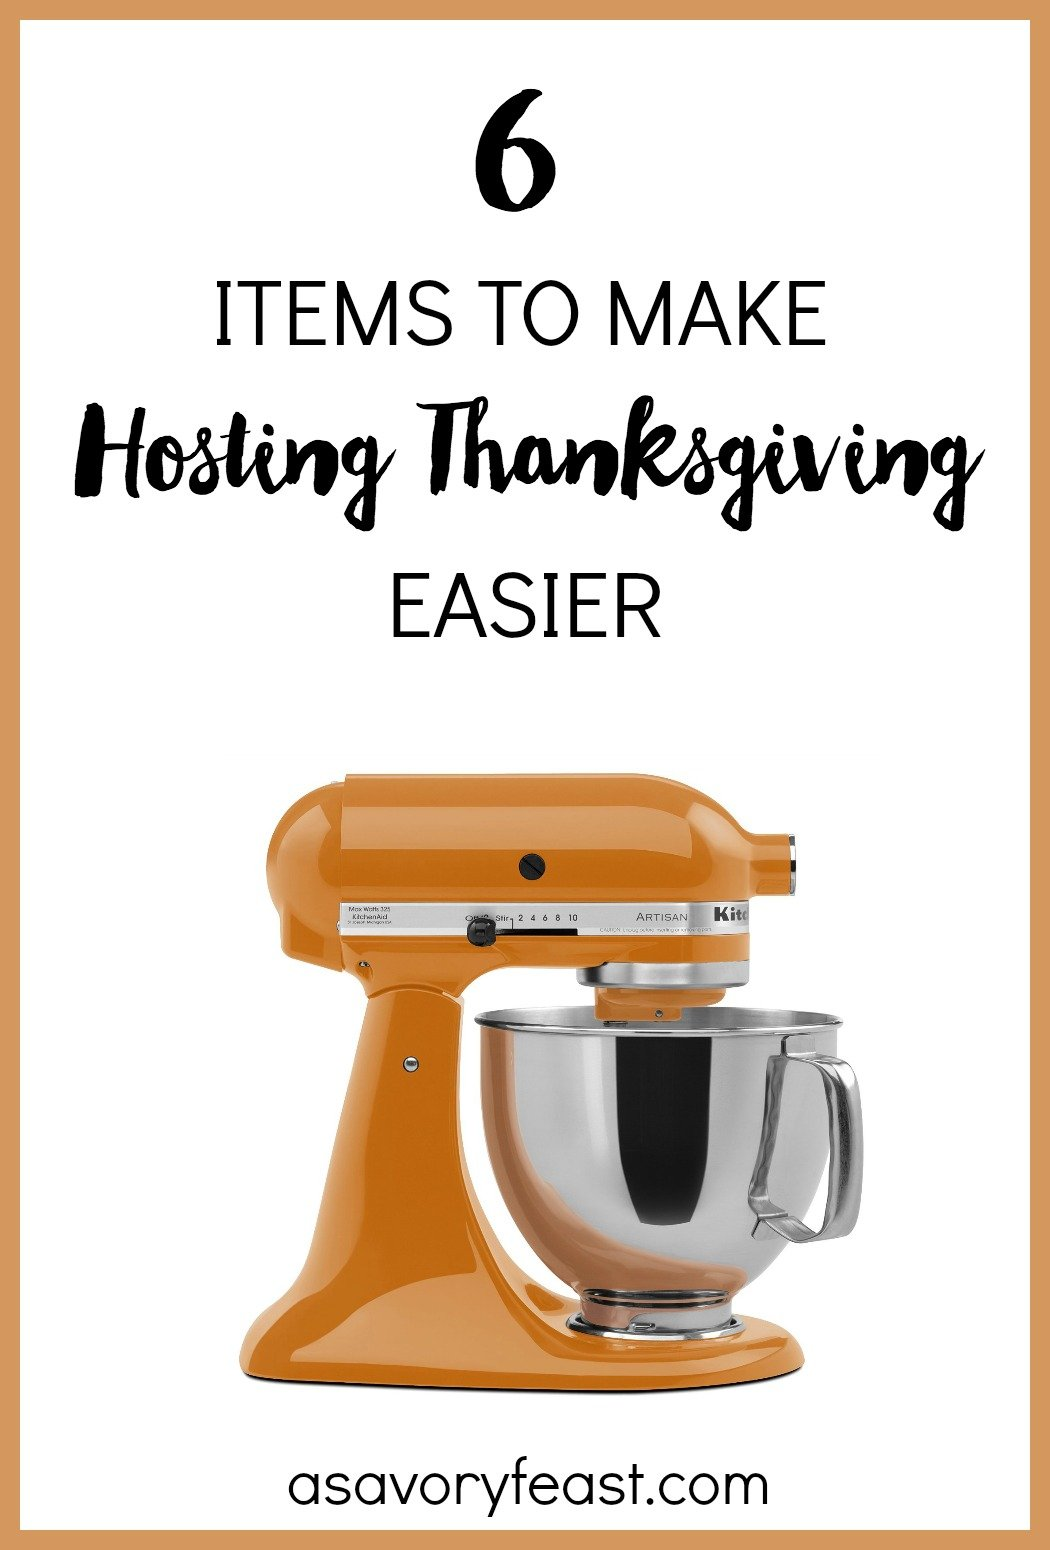 Are you hosting Thanksgiving dinner this year? Here are 6 items to make holiday entertaining easier. Save time and make your turkey day gathering a success.